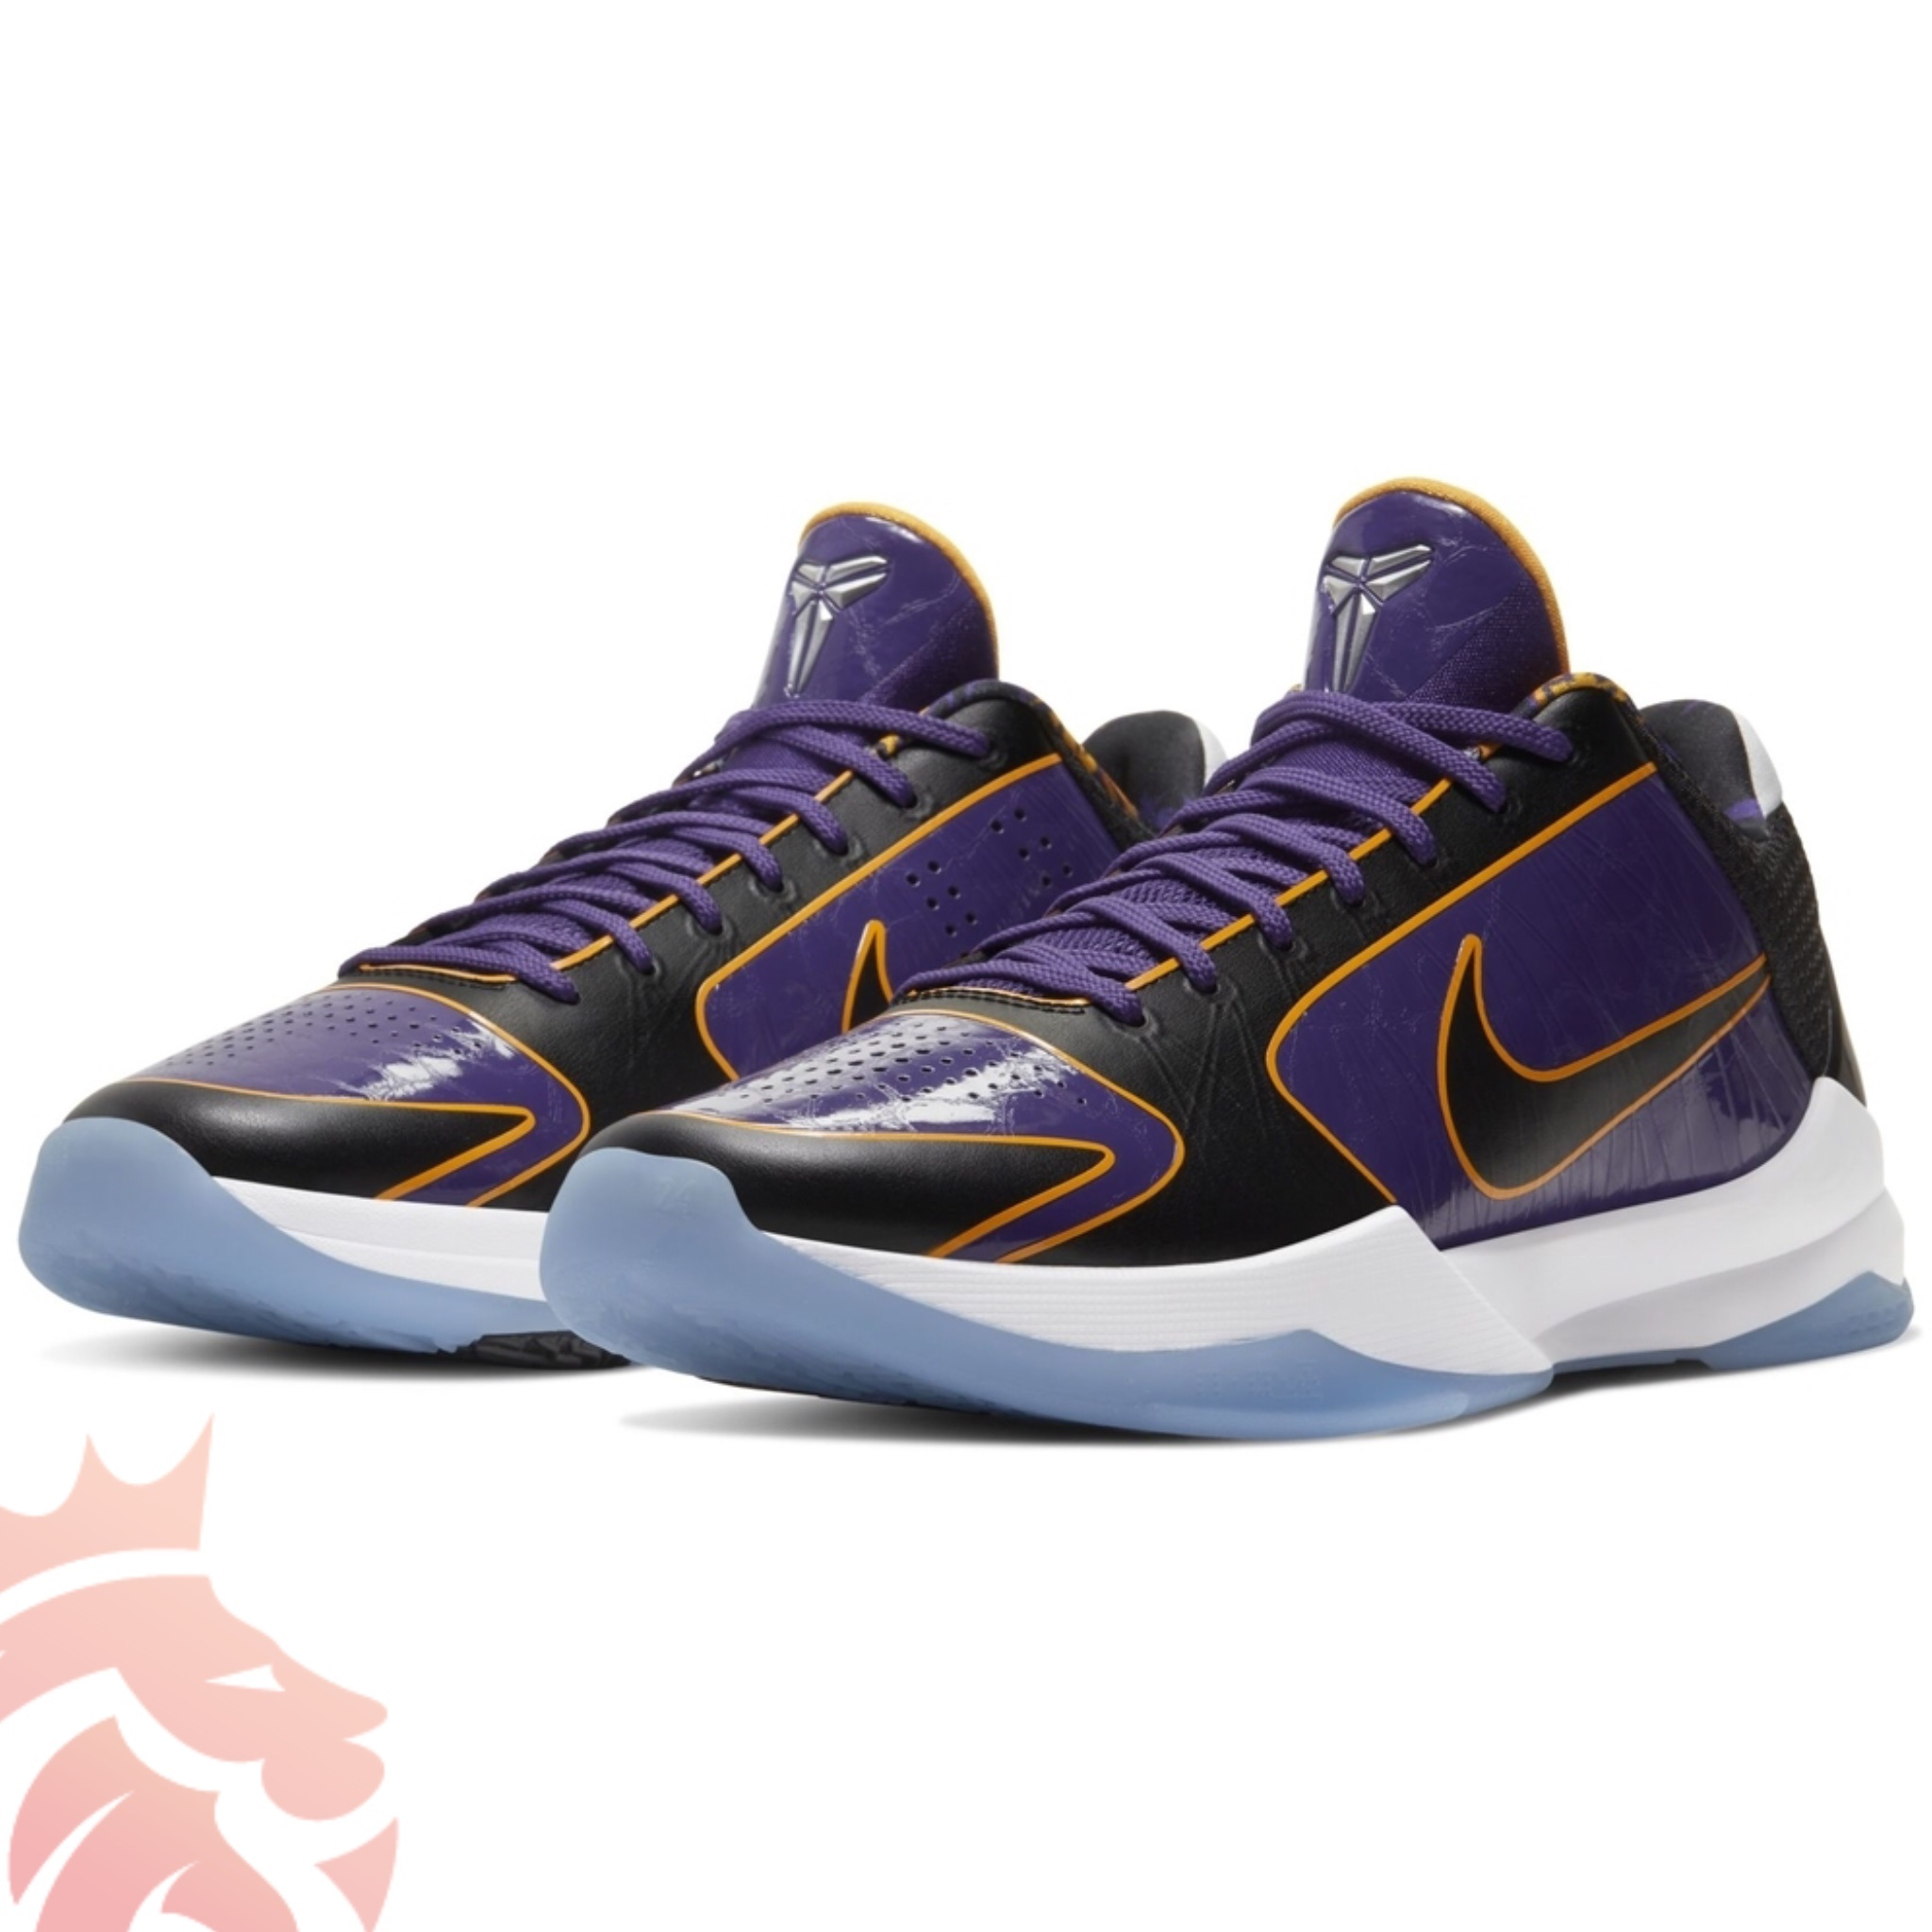 Nike Zoom Kobe V Protro 'Lakers'